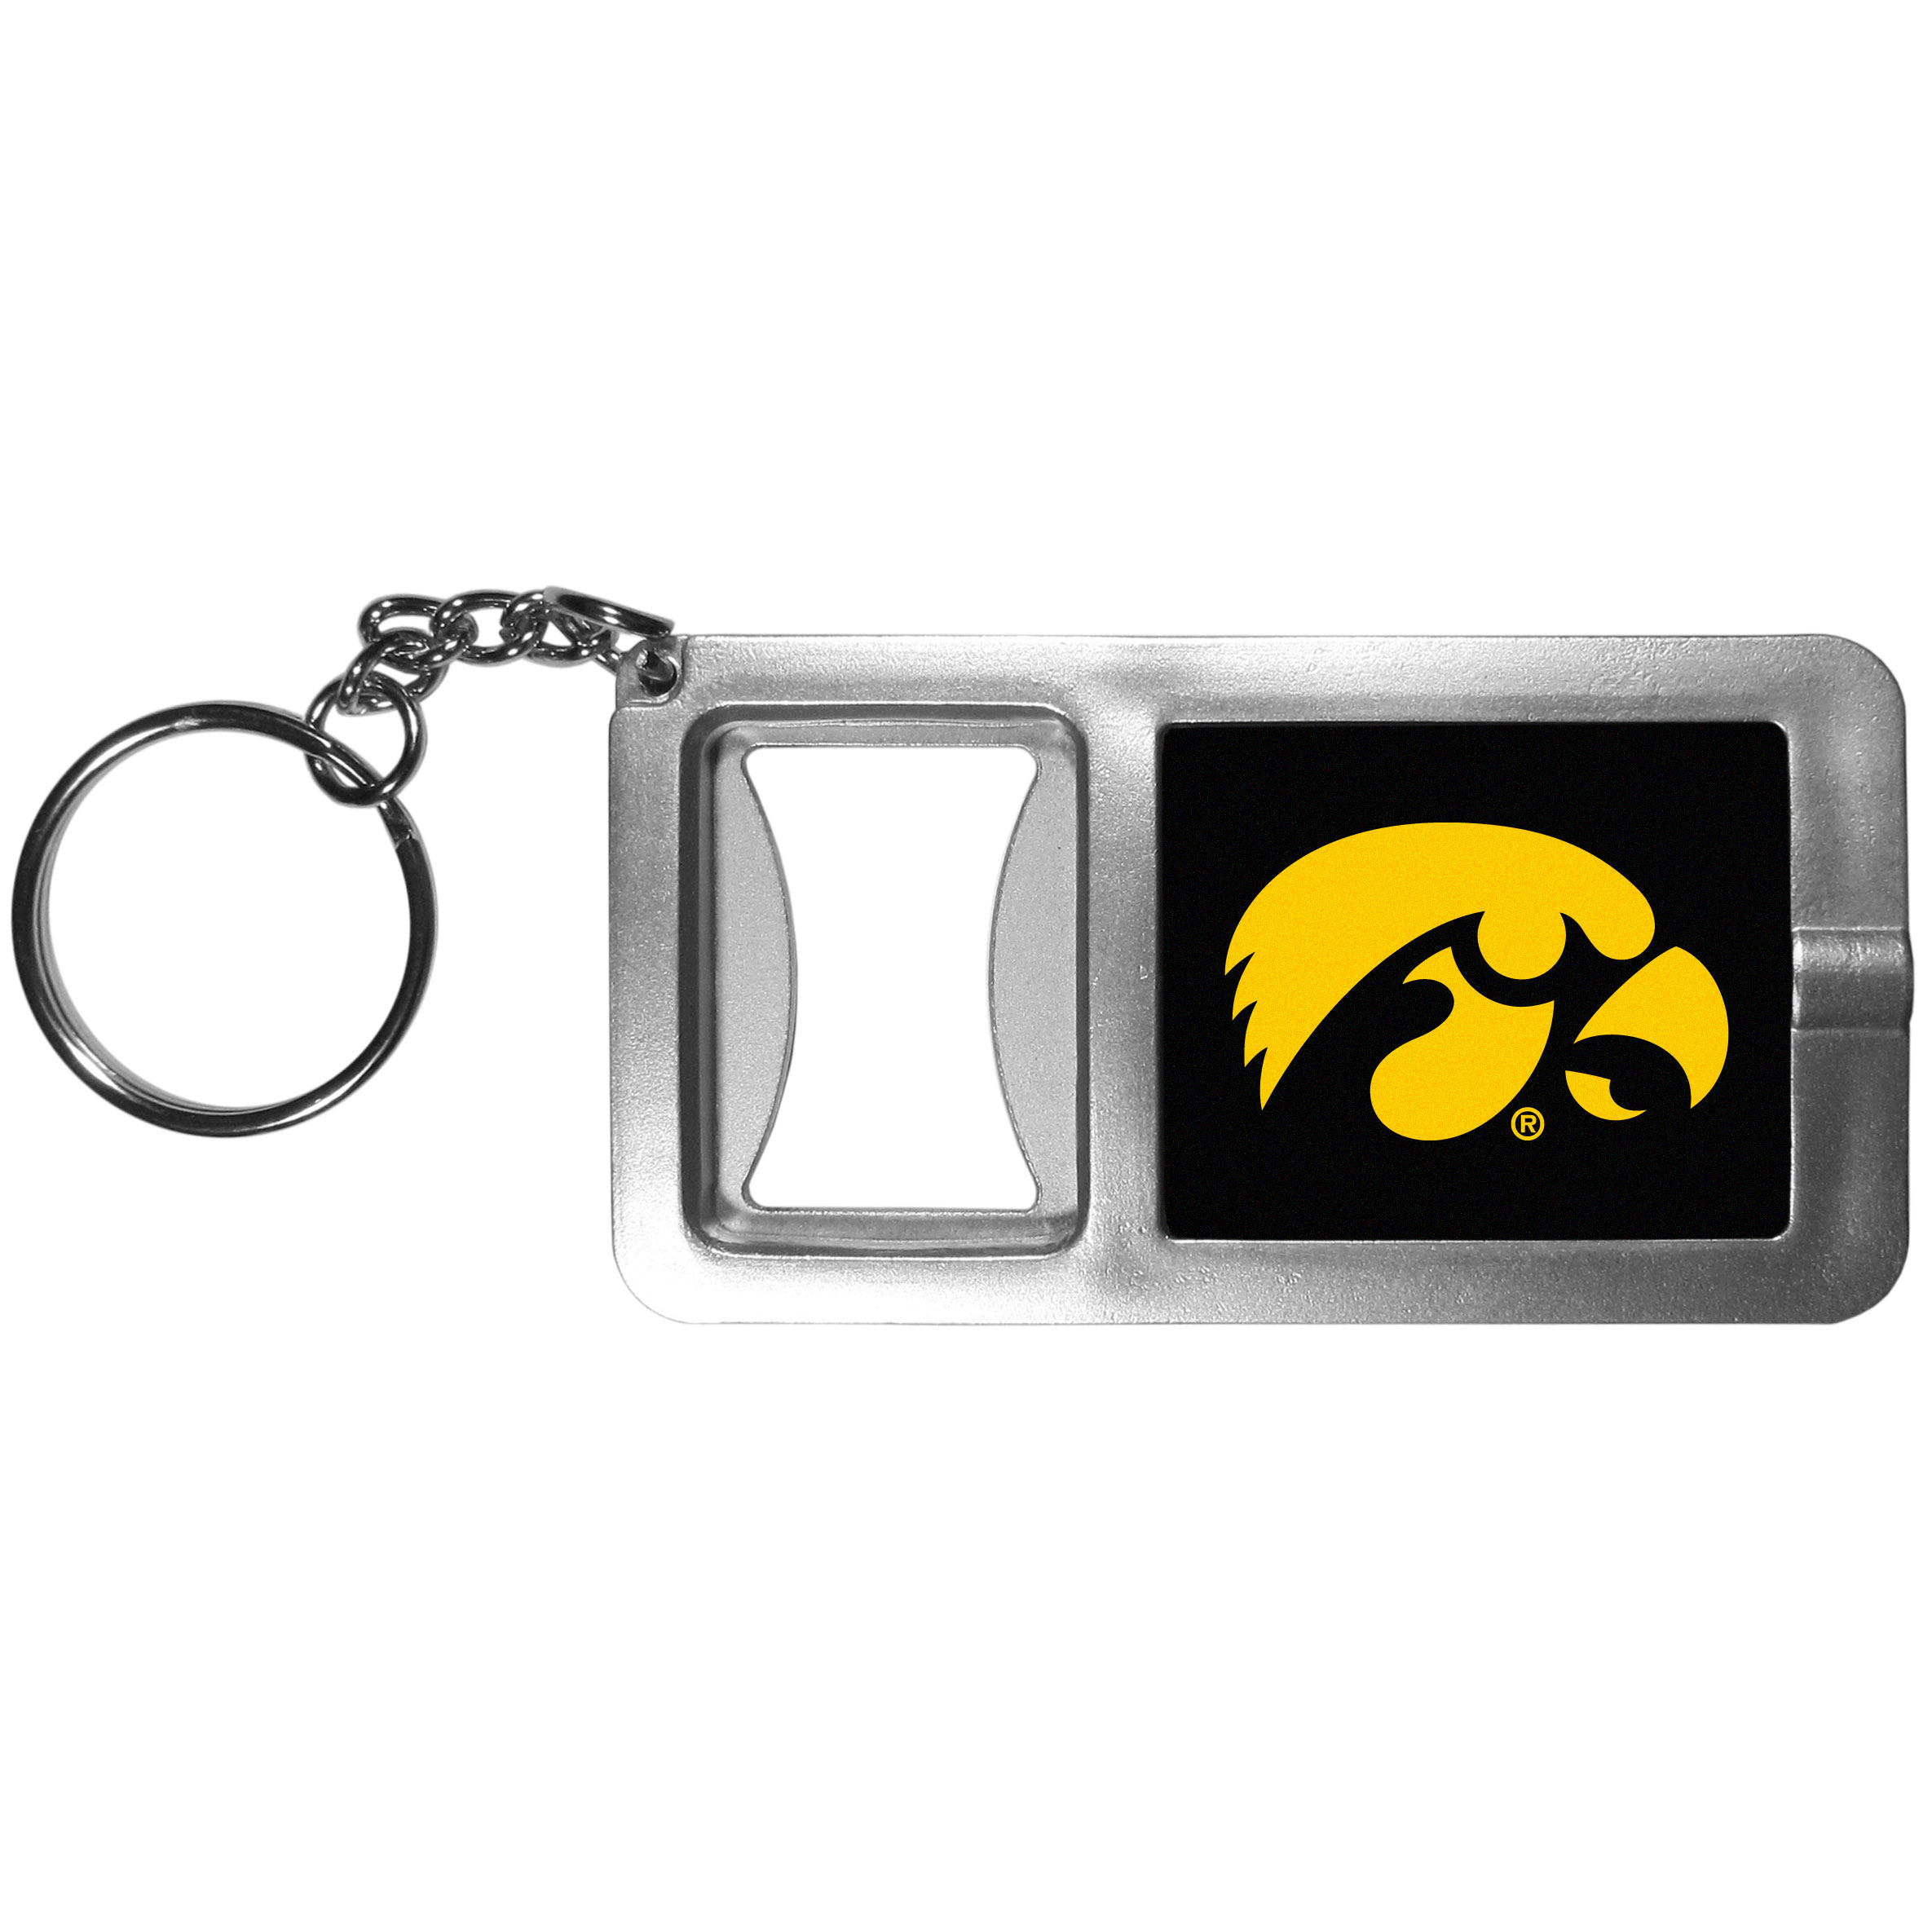 Iowa Hawkeyes Flashlight Key Chain with Bottle Opener - Never be without light with our Iowa Hawkeyes flashlight keychain that features a handy bottle opener feature. This versatile key chain is perfect for camping and travel and is a great way to show off your team pride!